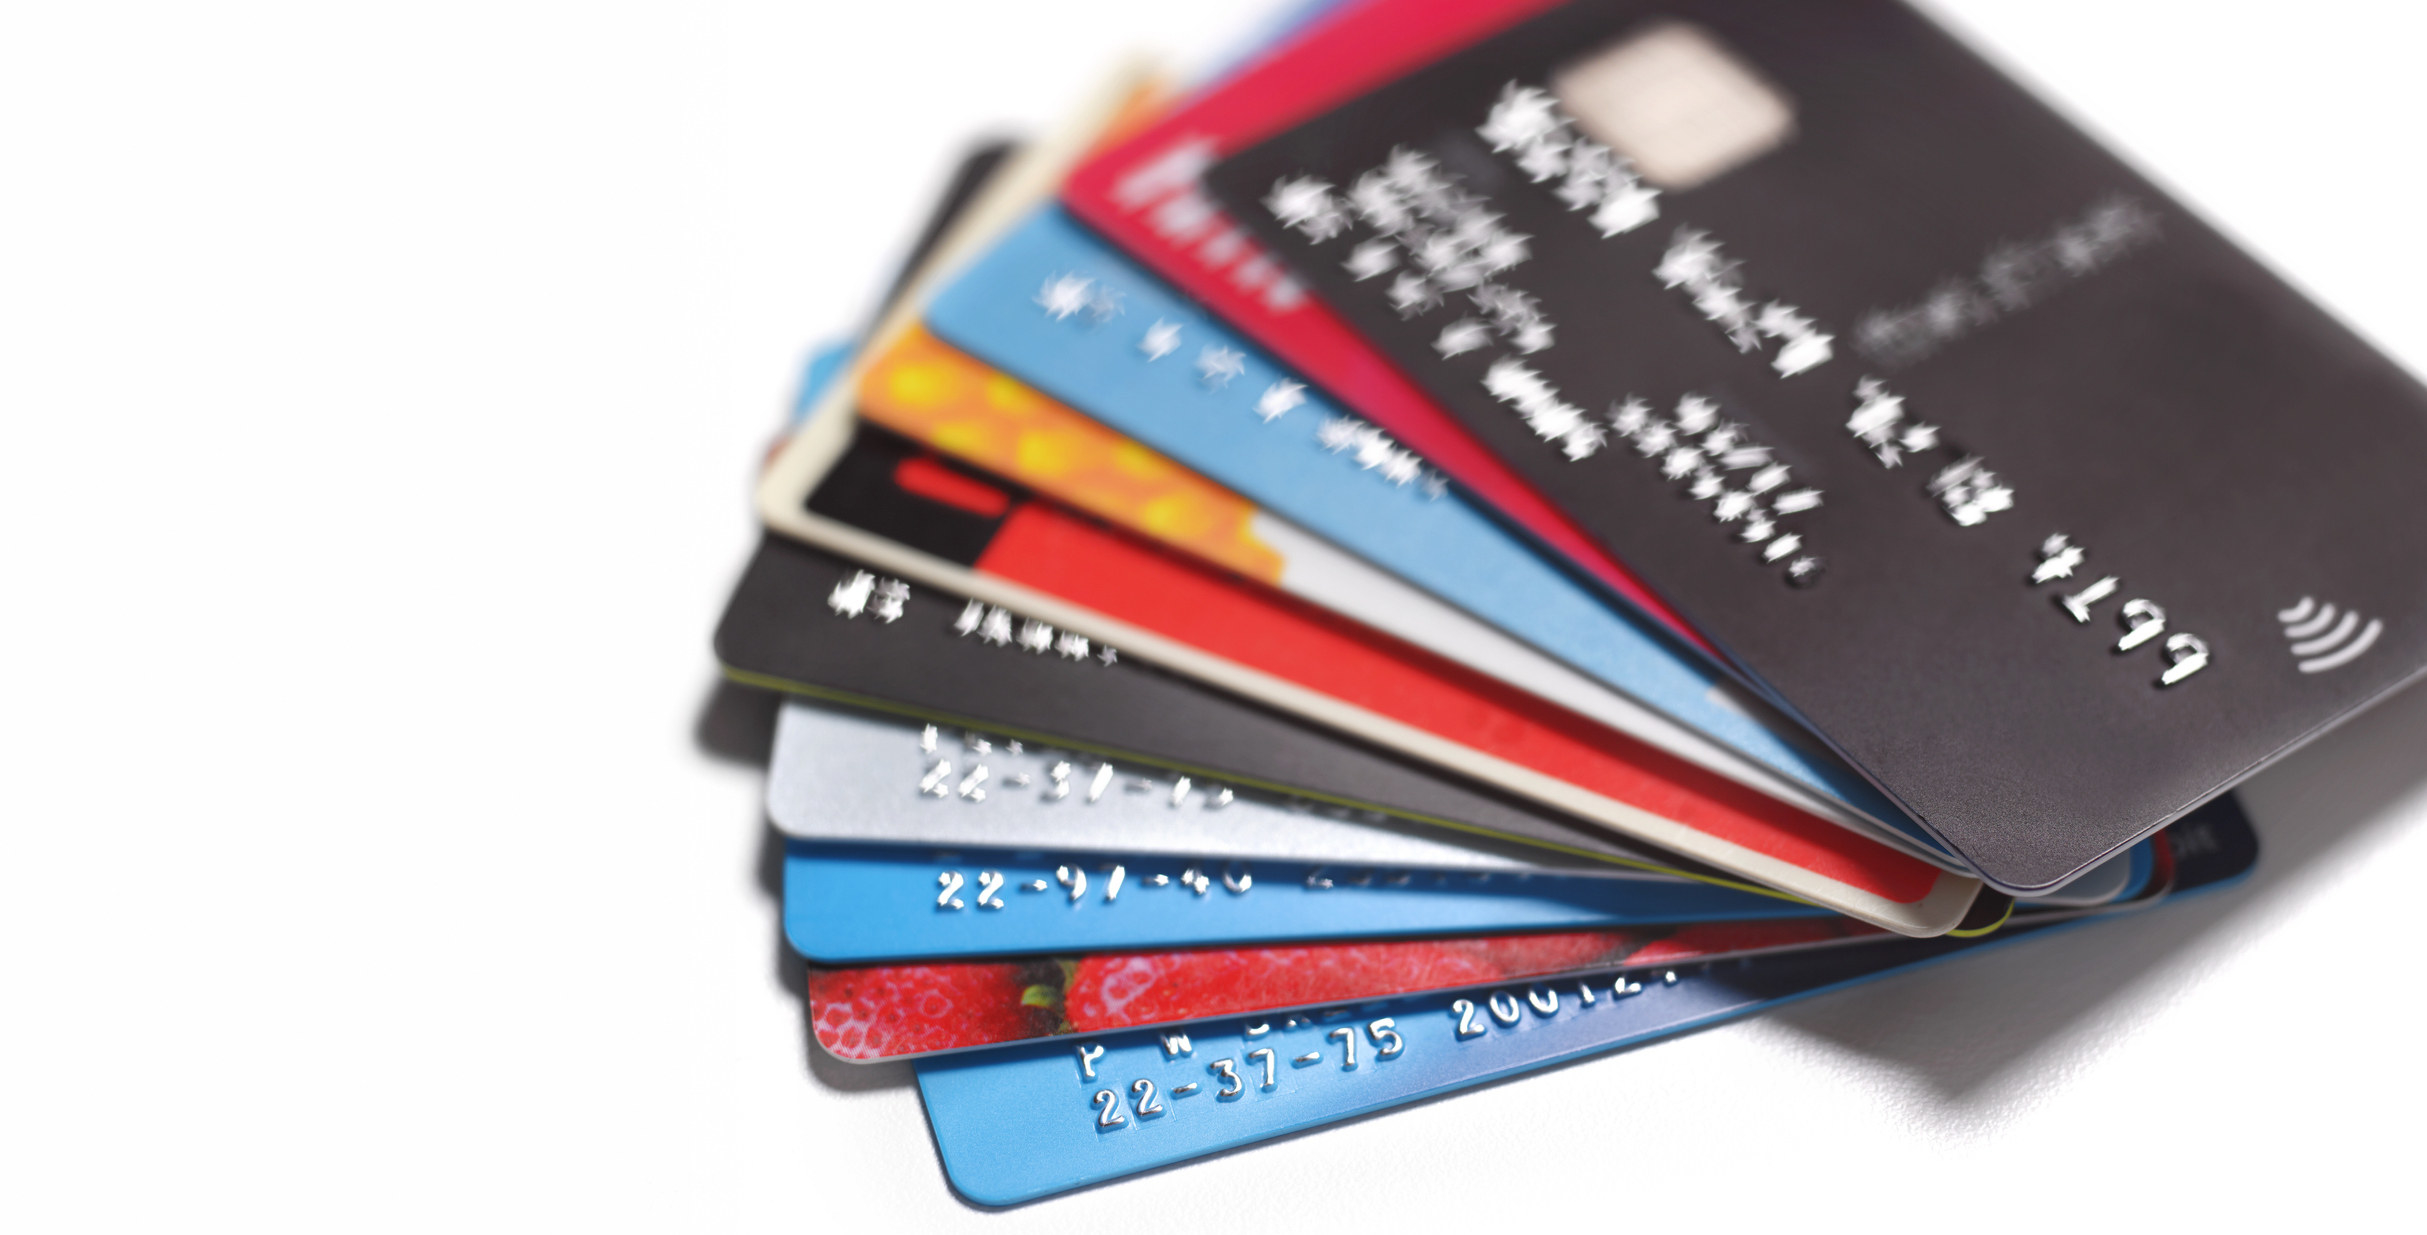 A fan of credit cards of multiple colors